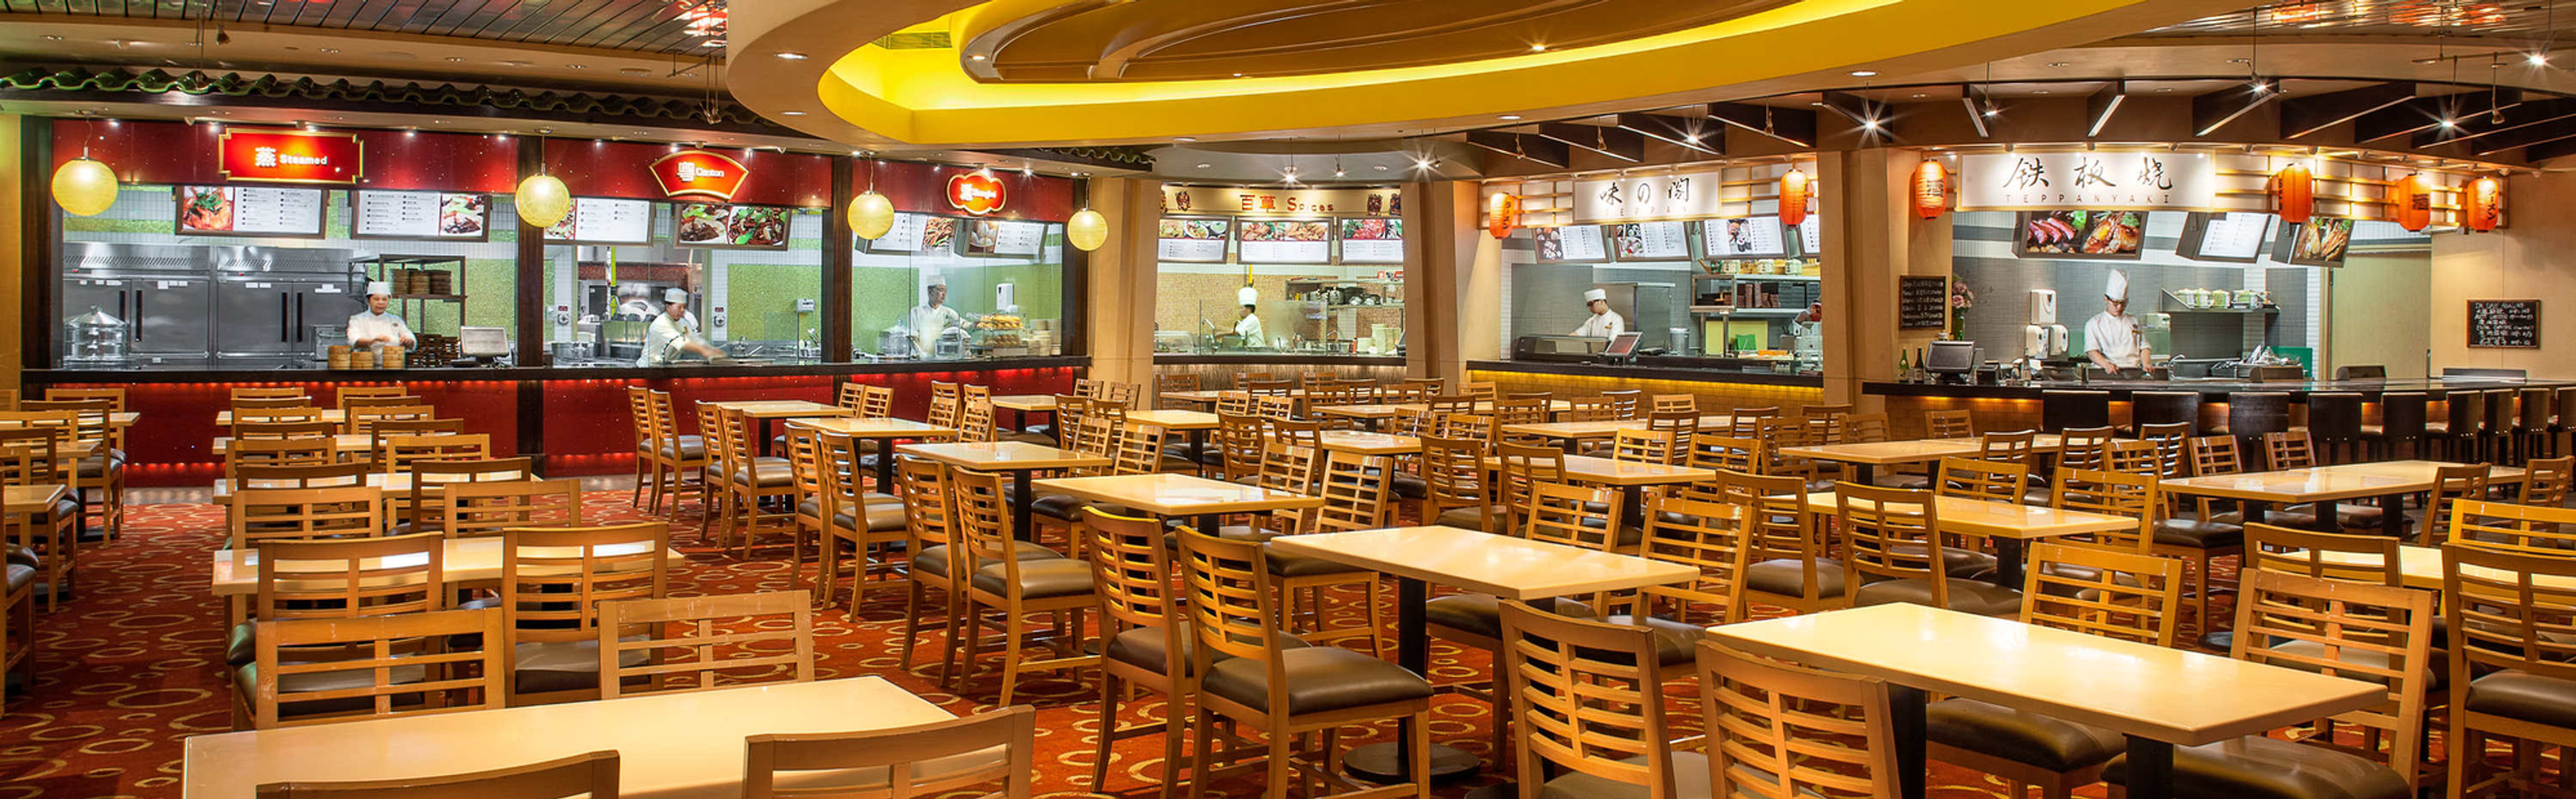 FOOD COURT SPACES READY